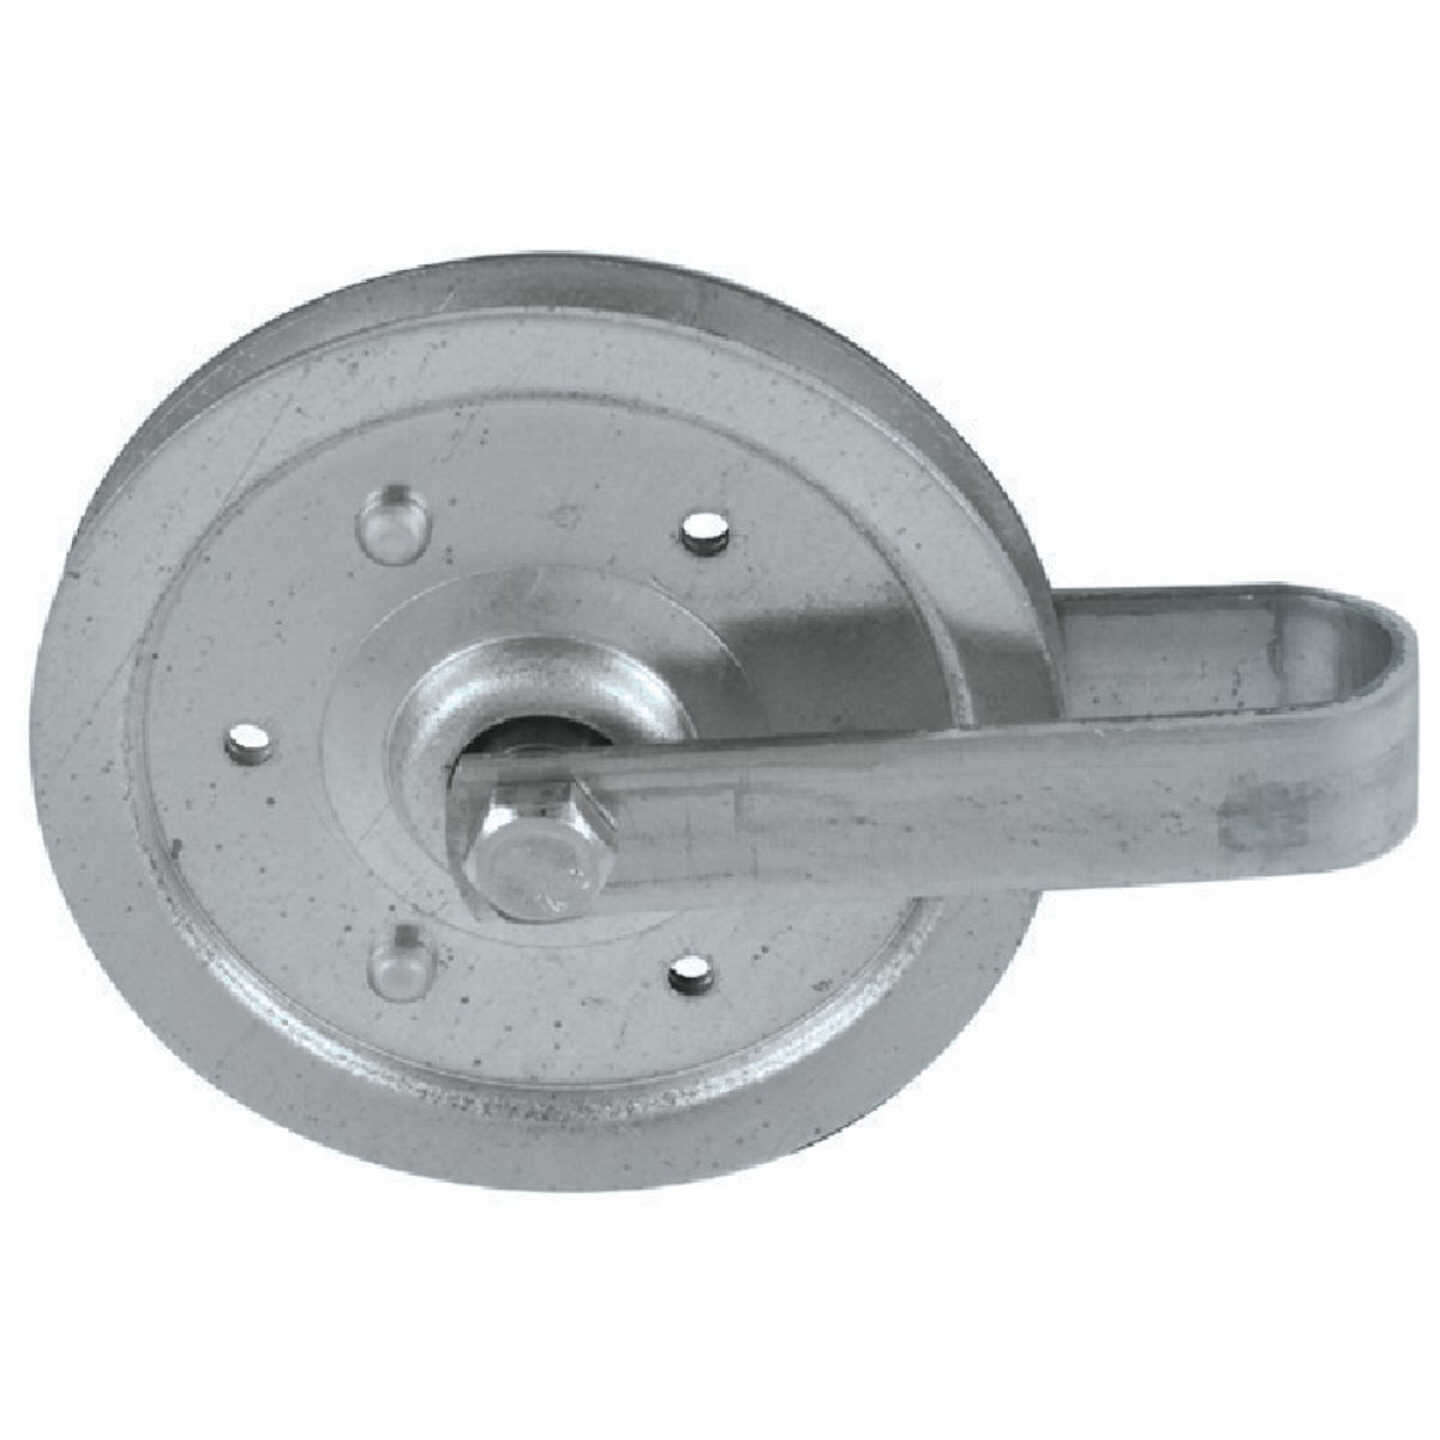 Prime-Line 4 In. Pulley w/Strap and Axle Bolt Image 3